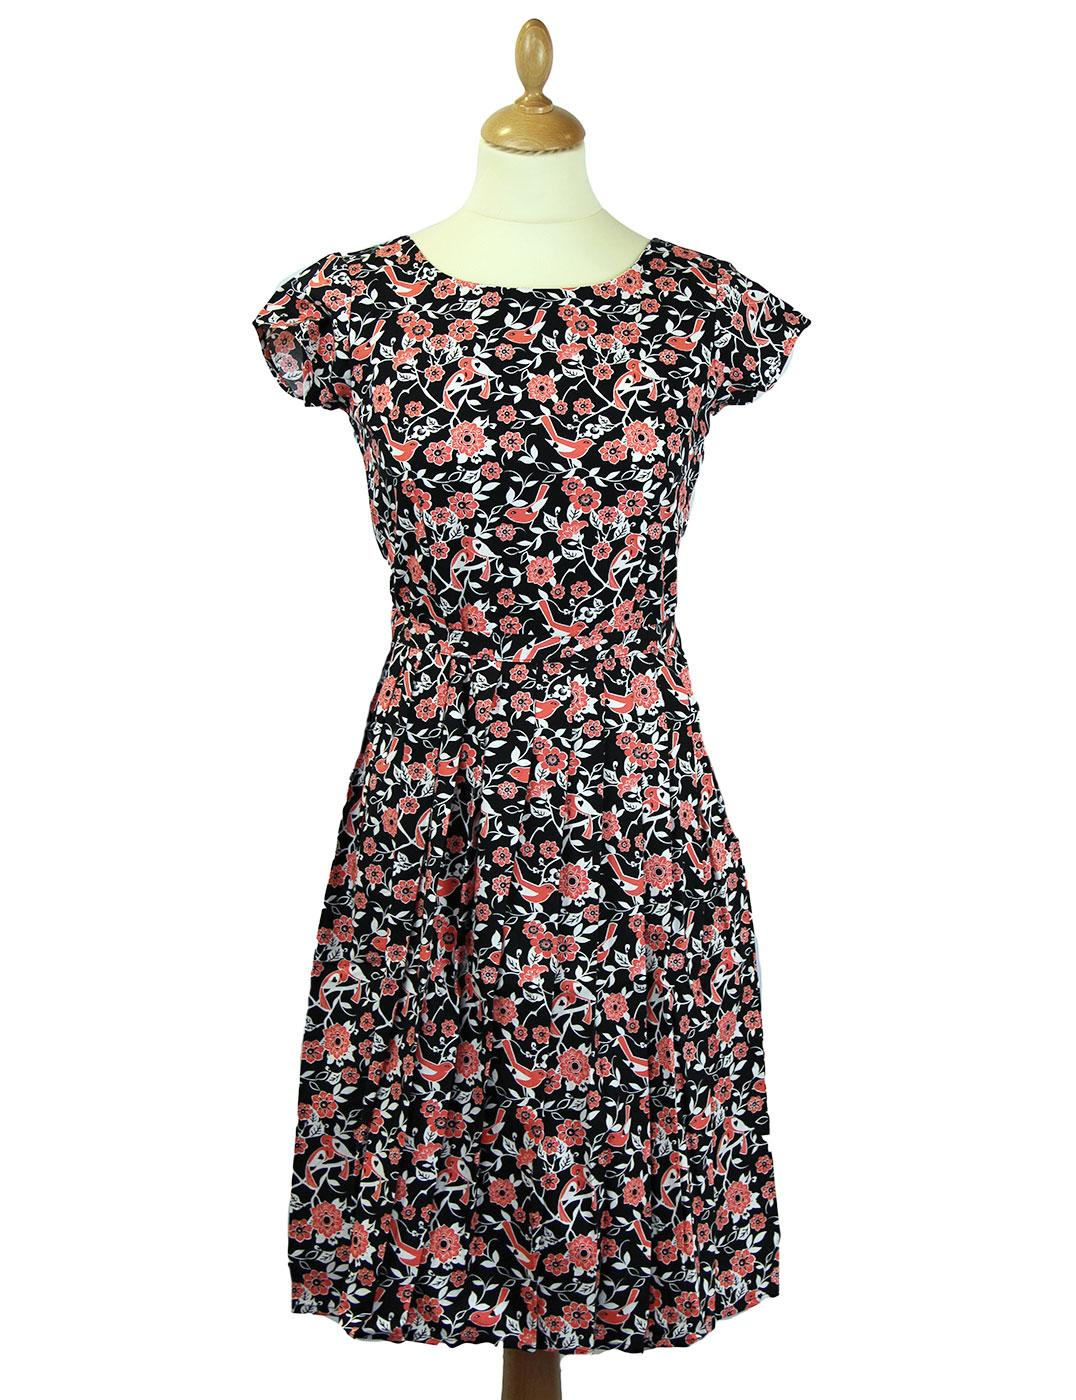 Love Birds Retro 1950s Vintage Summer Tea Dress